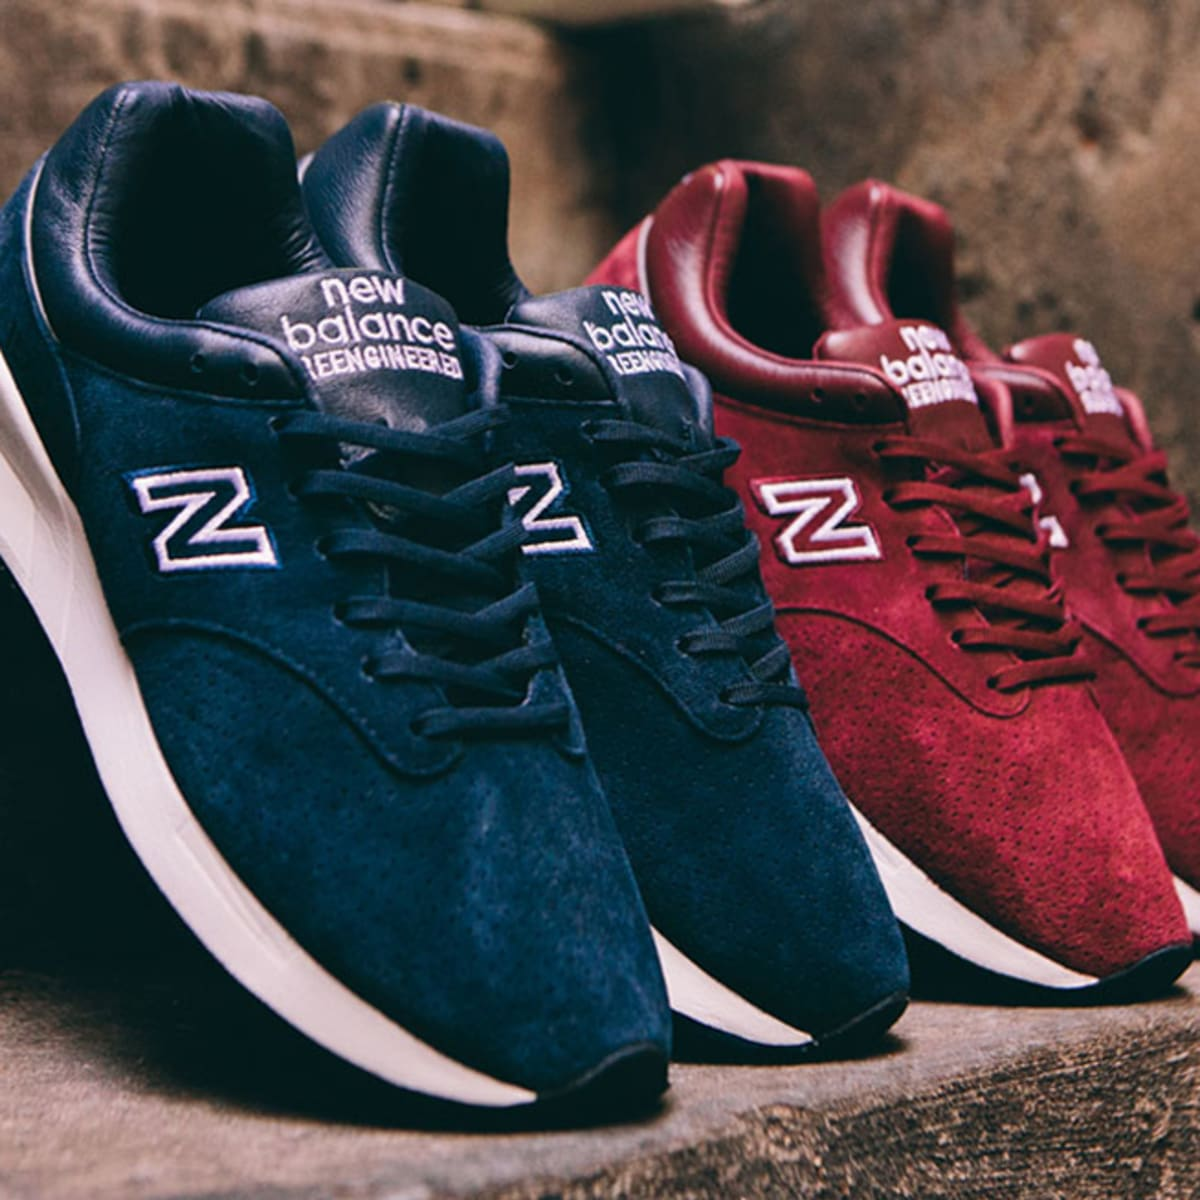 New Balance Re-Engineers the 1500 - Freshness Mag